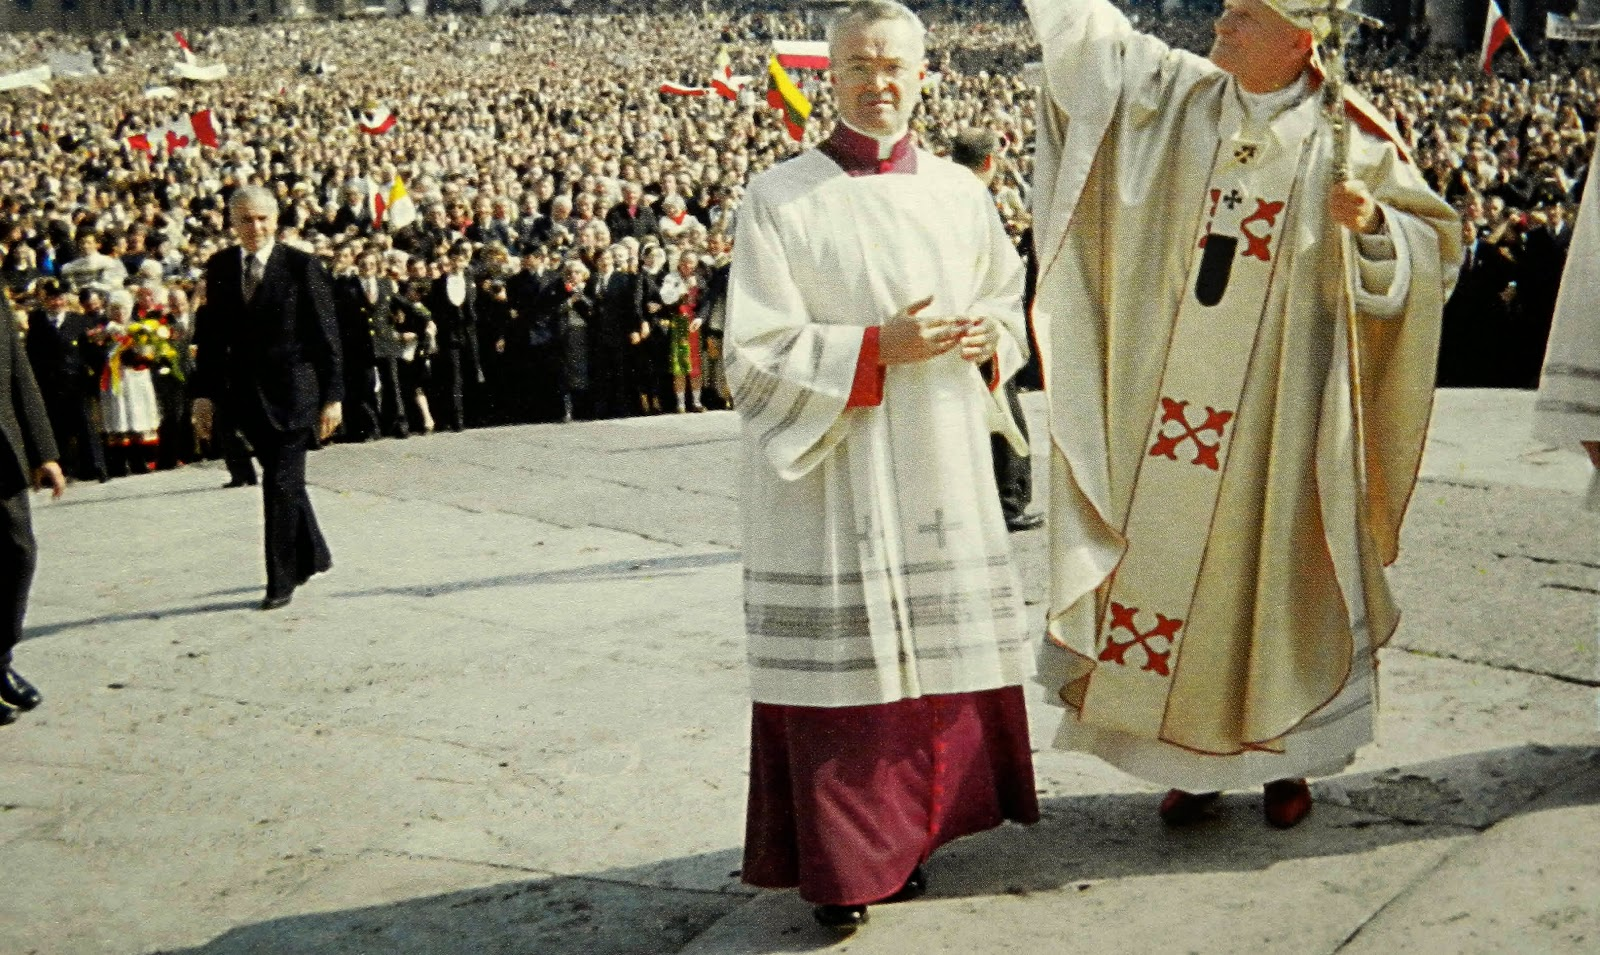 St. John Paul II at his inauguration Mass